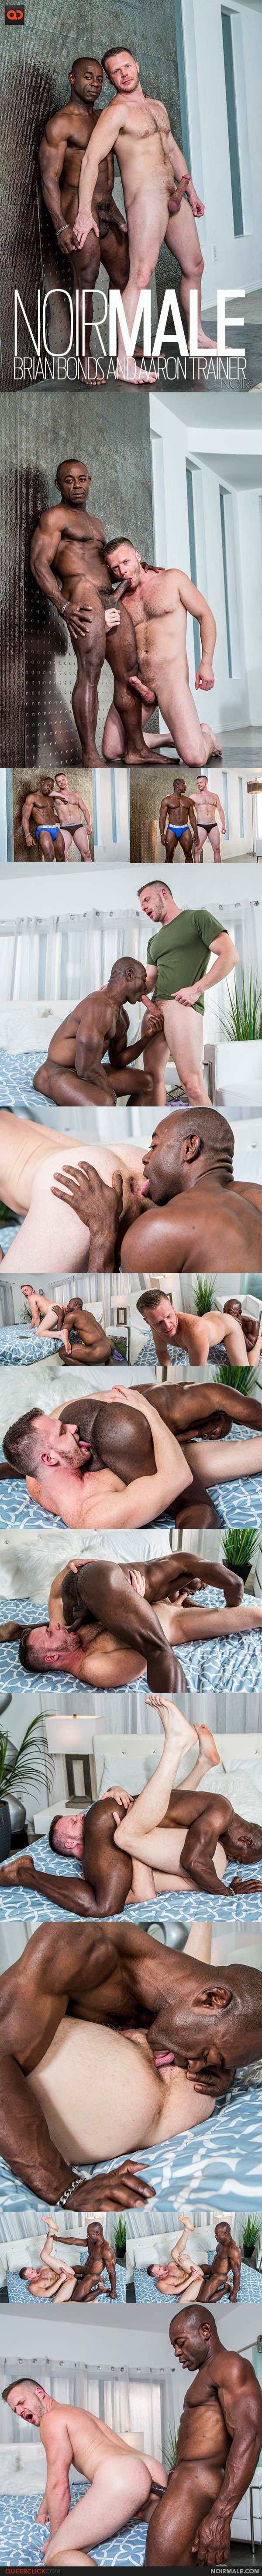 Noir Male: Brian Bonds and Aaron Trainer